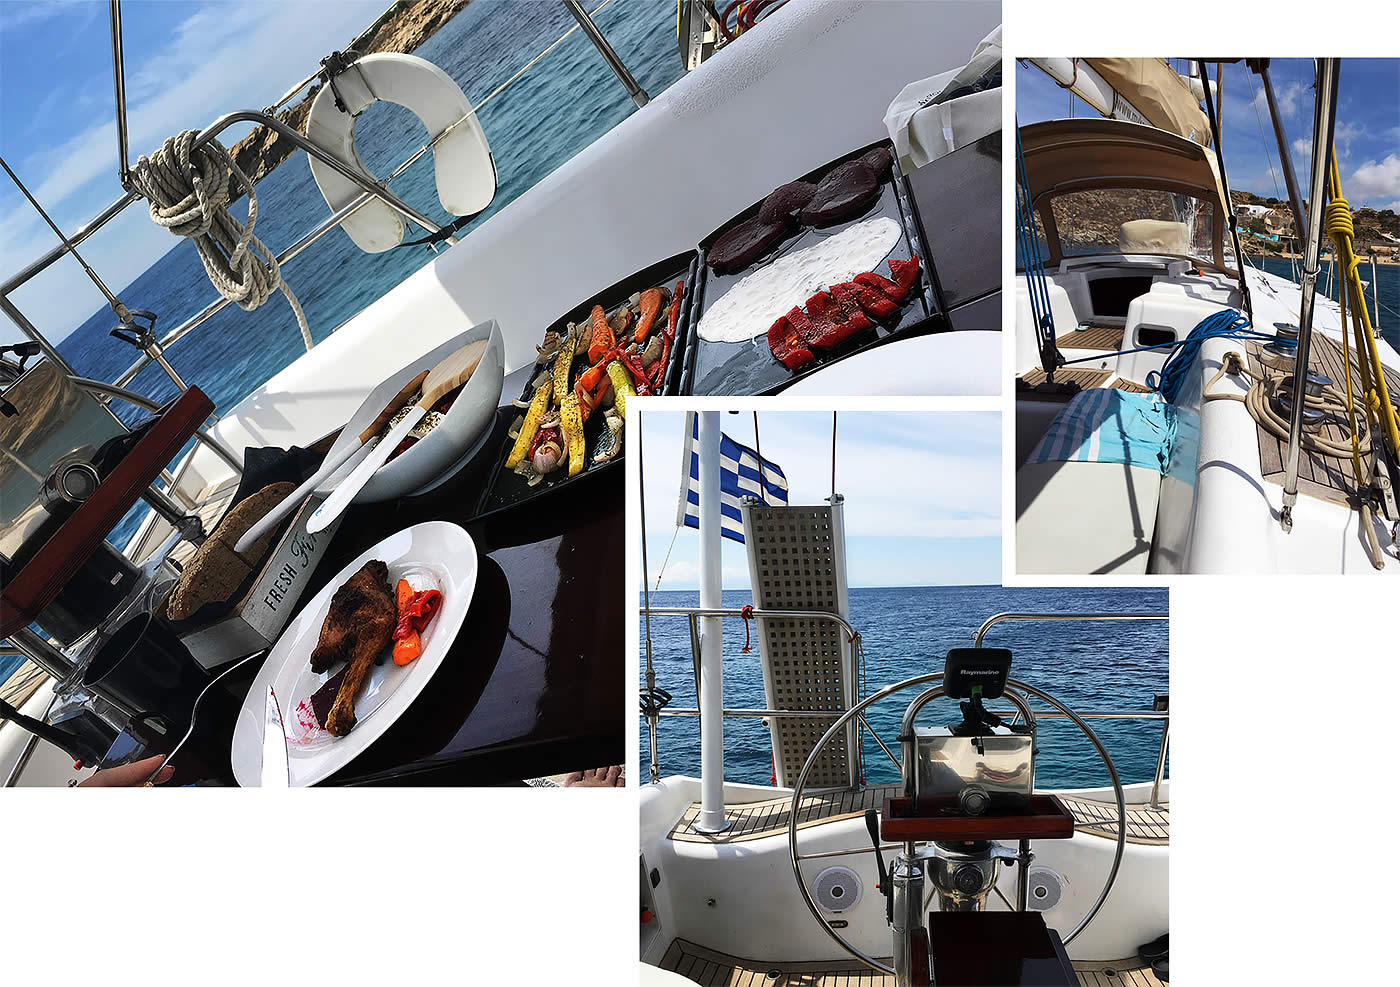 Ten days in Mykonos - Sailing